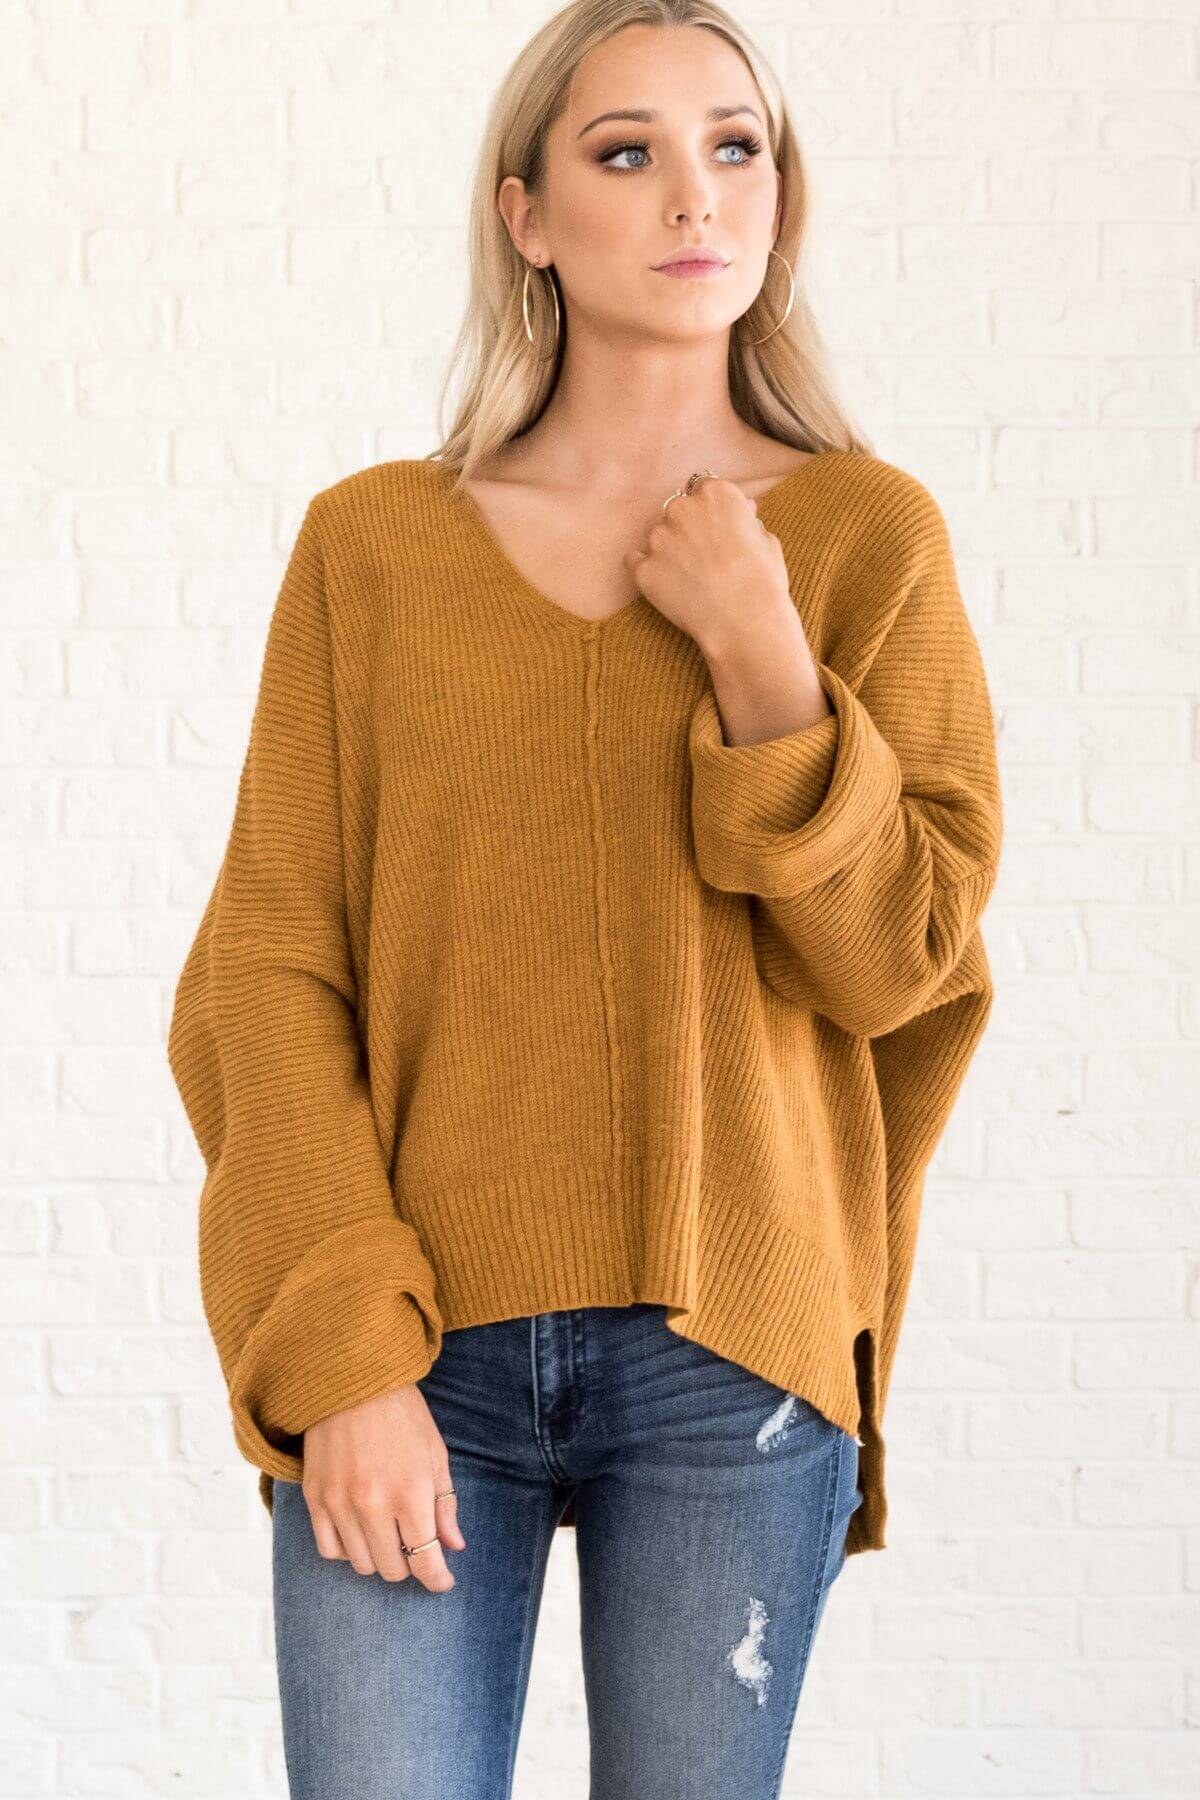 Mustard Yellow Oversized Pullover Sweaters for Fall and Winter